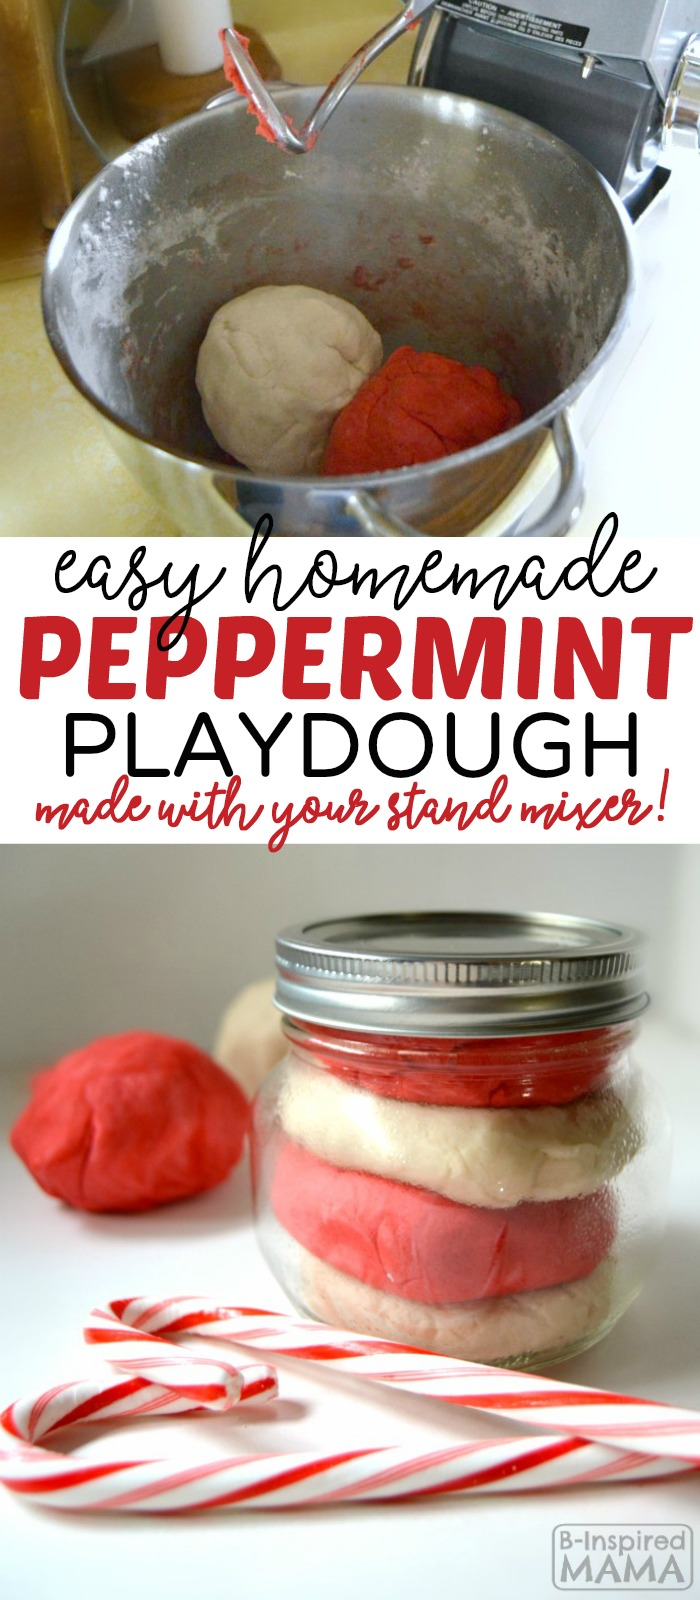 Homemade Peppermint Playdough Recipe - Made Easy with a Stand Mixer